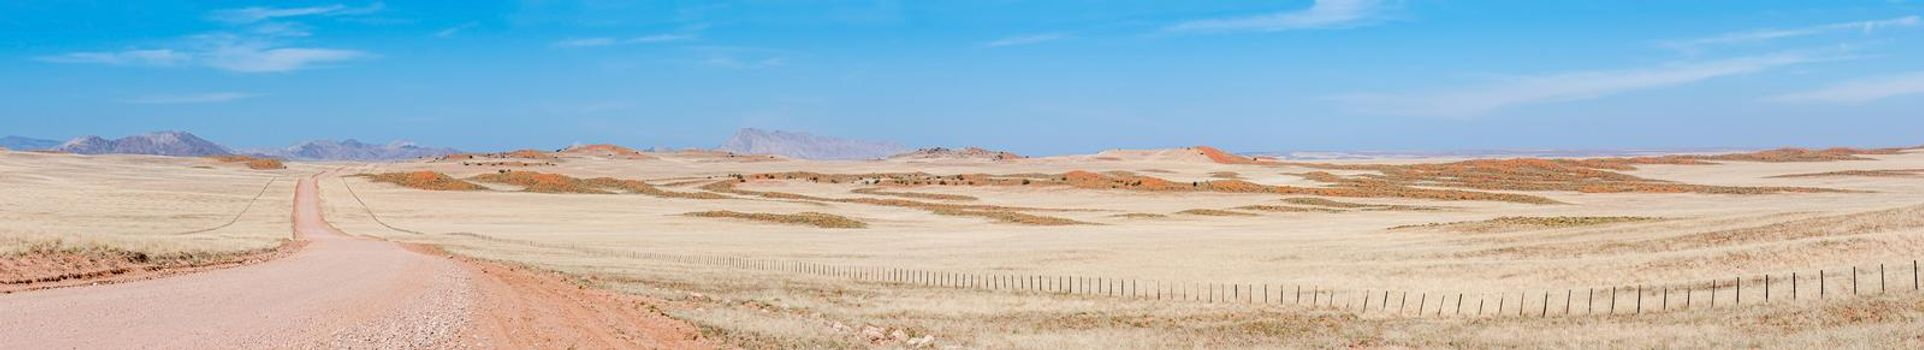 Panorama on road C14 south of the Tropic of Capricorn